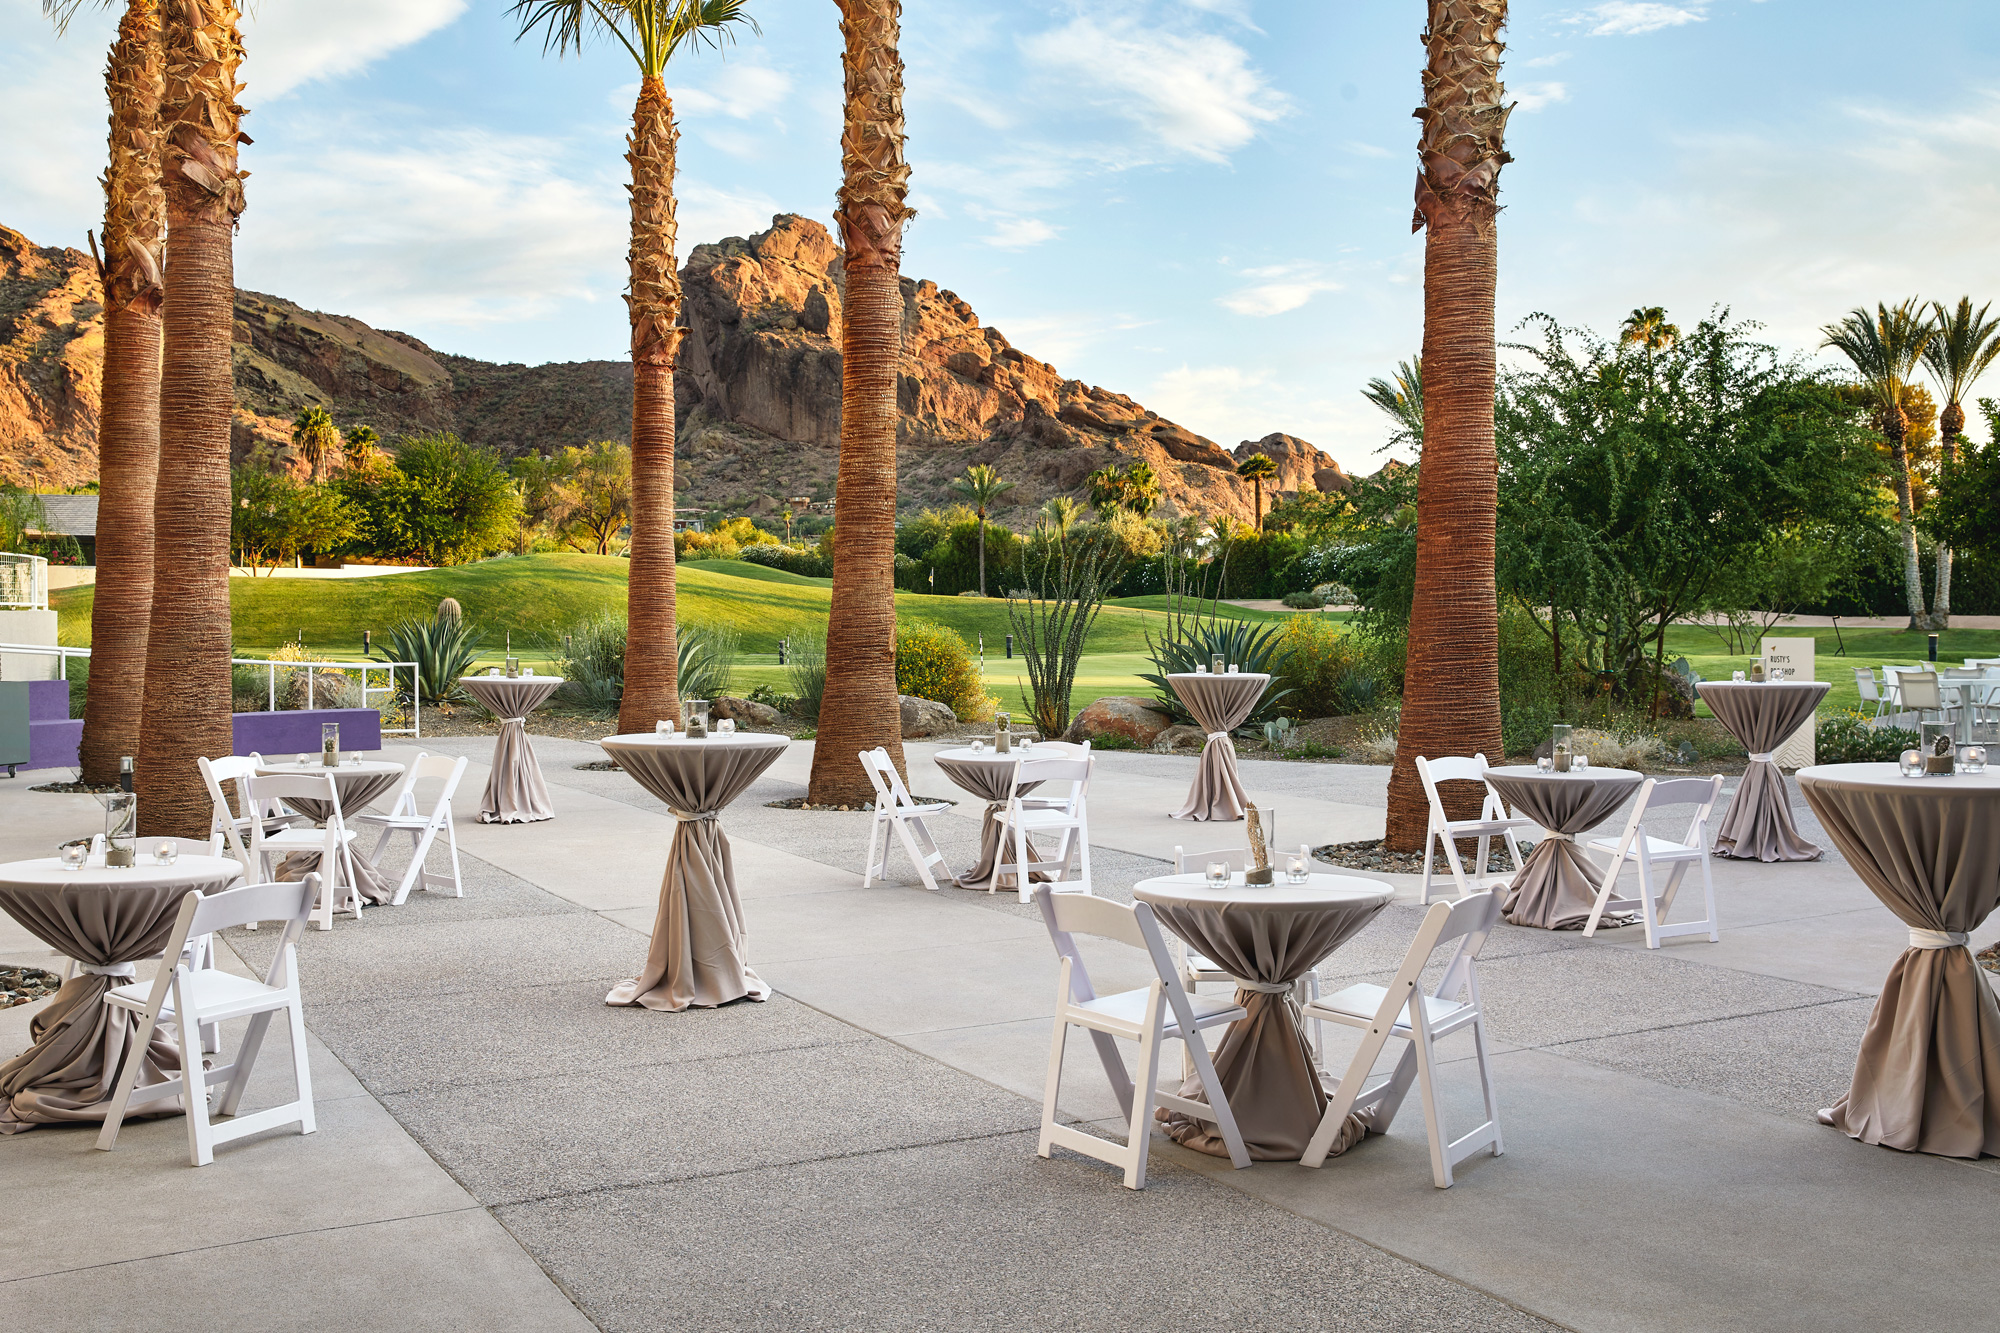 Mountain Shadows Resort- Stephen Denton Photography - Phoenix AZ Commercial Photographer